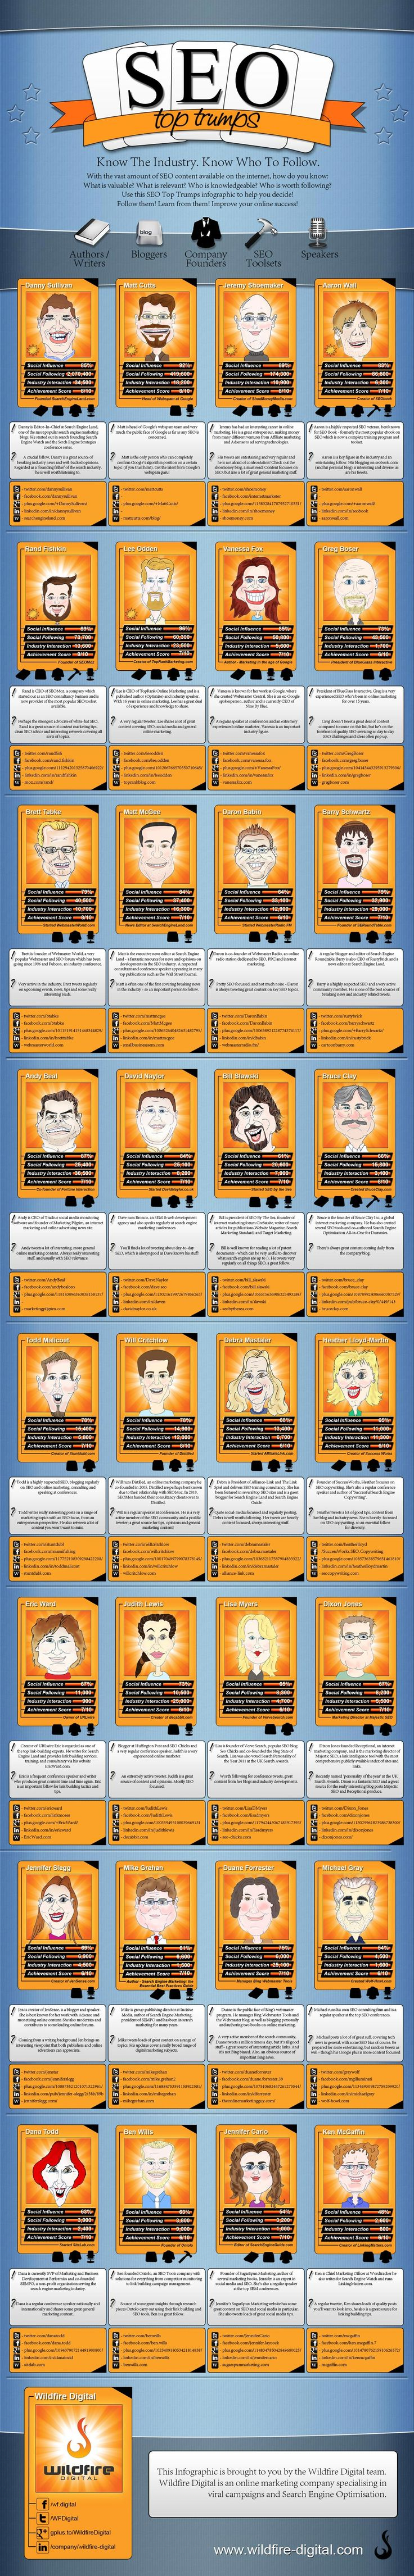 Such is the celebrity culture within the SEO industry, someone's even created a Top Trumps infographic! :-)